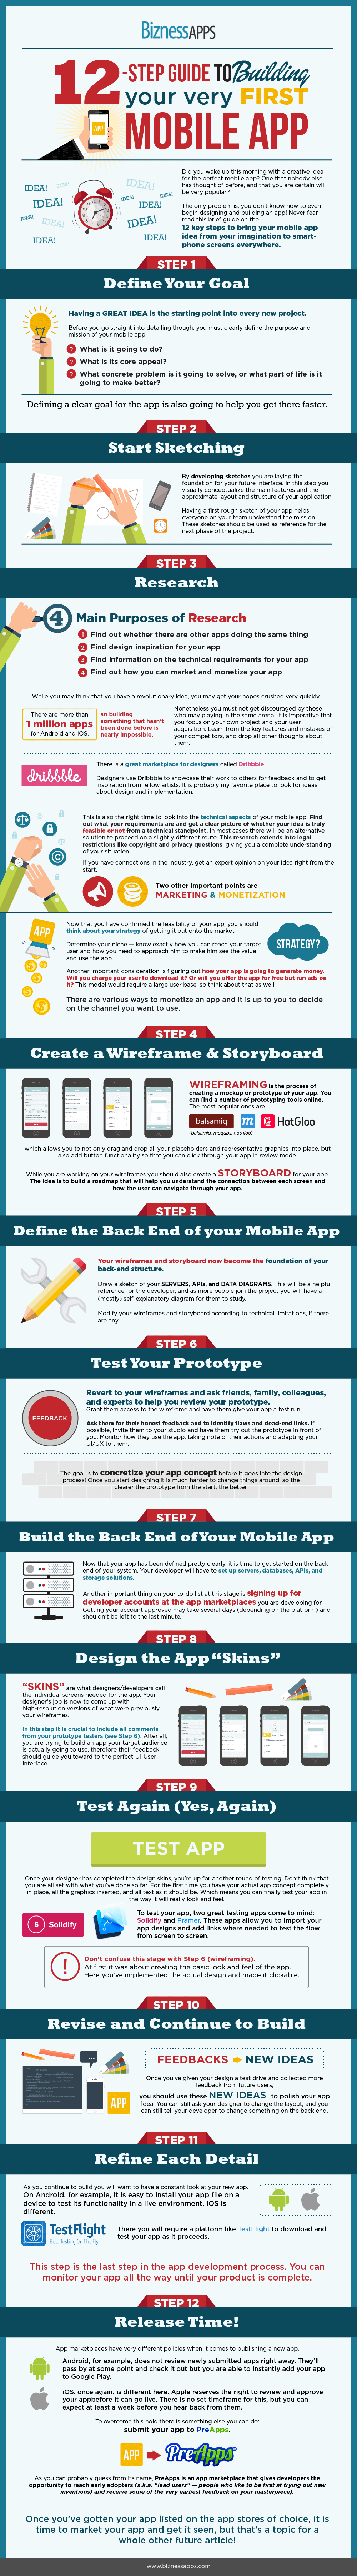 Infograph-on-Building-Mobile-App